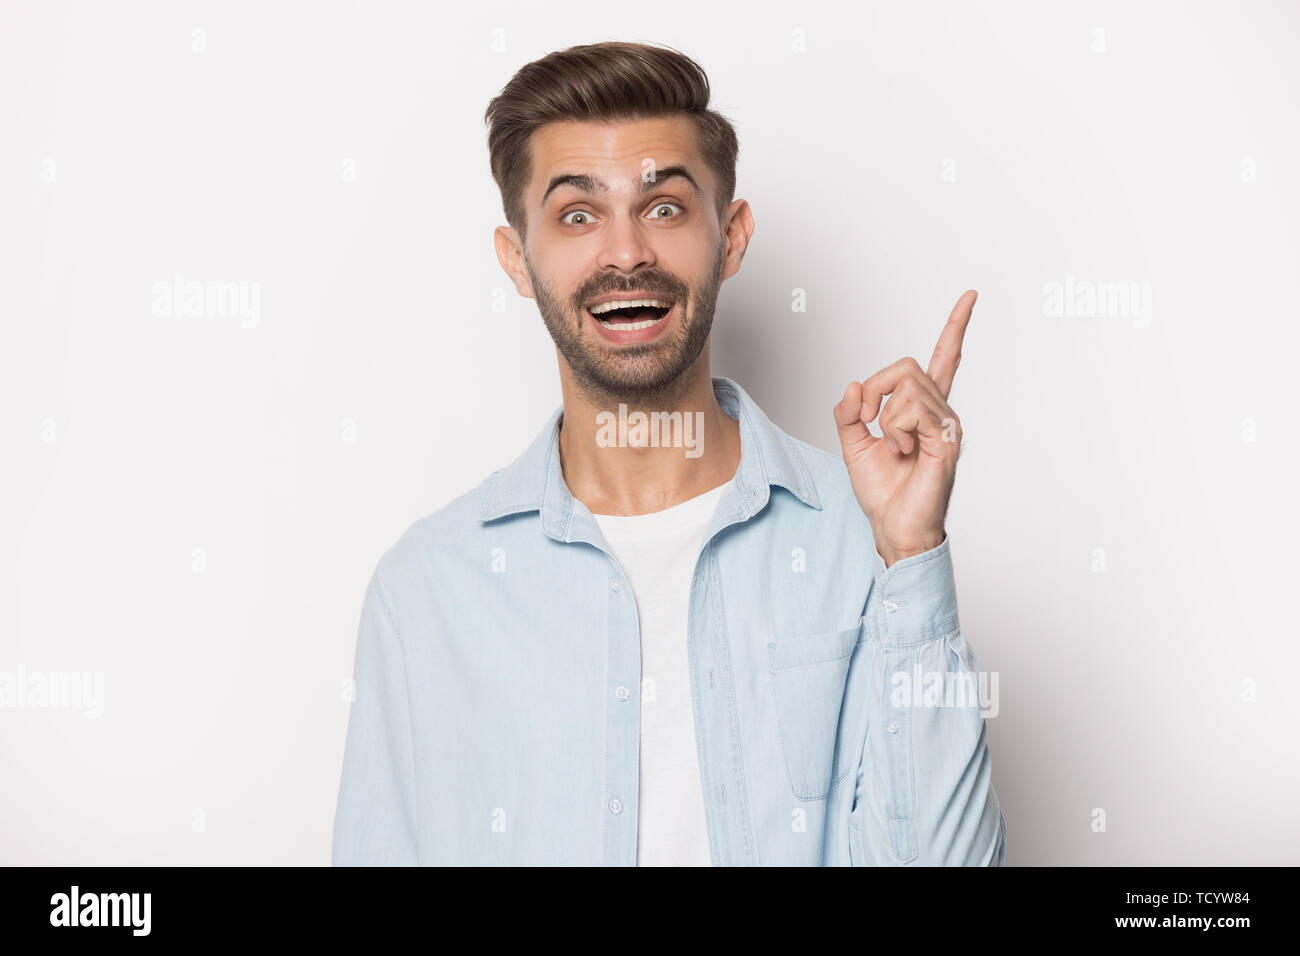 Guy raised finger up gesture of resourceful person studio shot - Stock Image